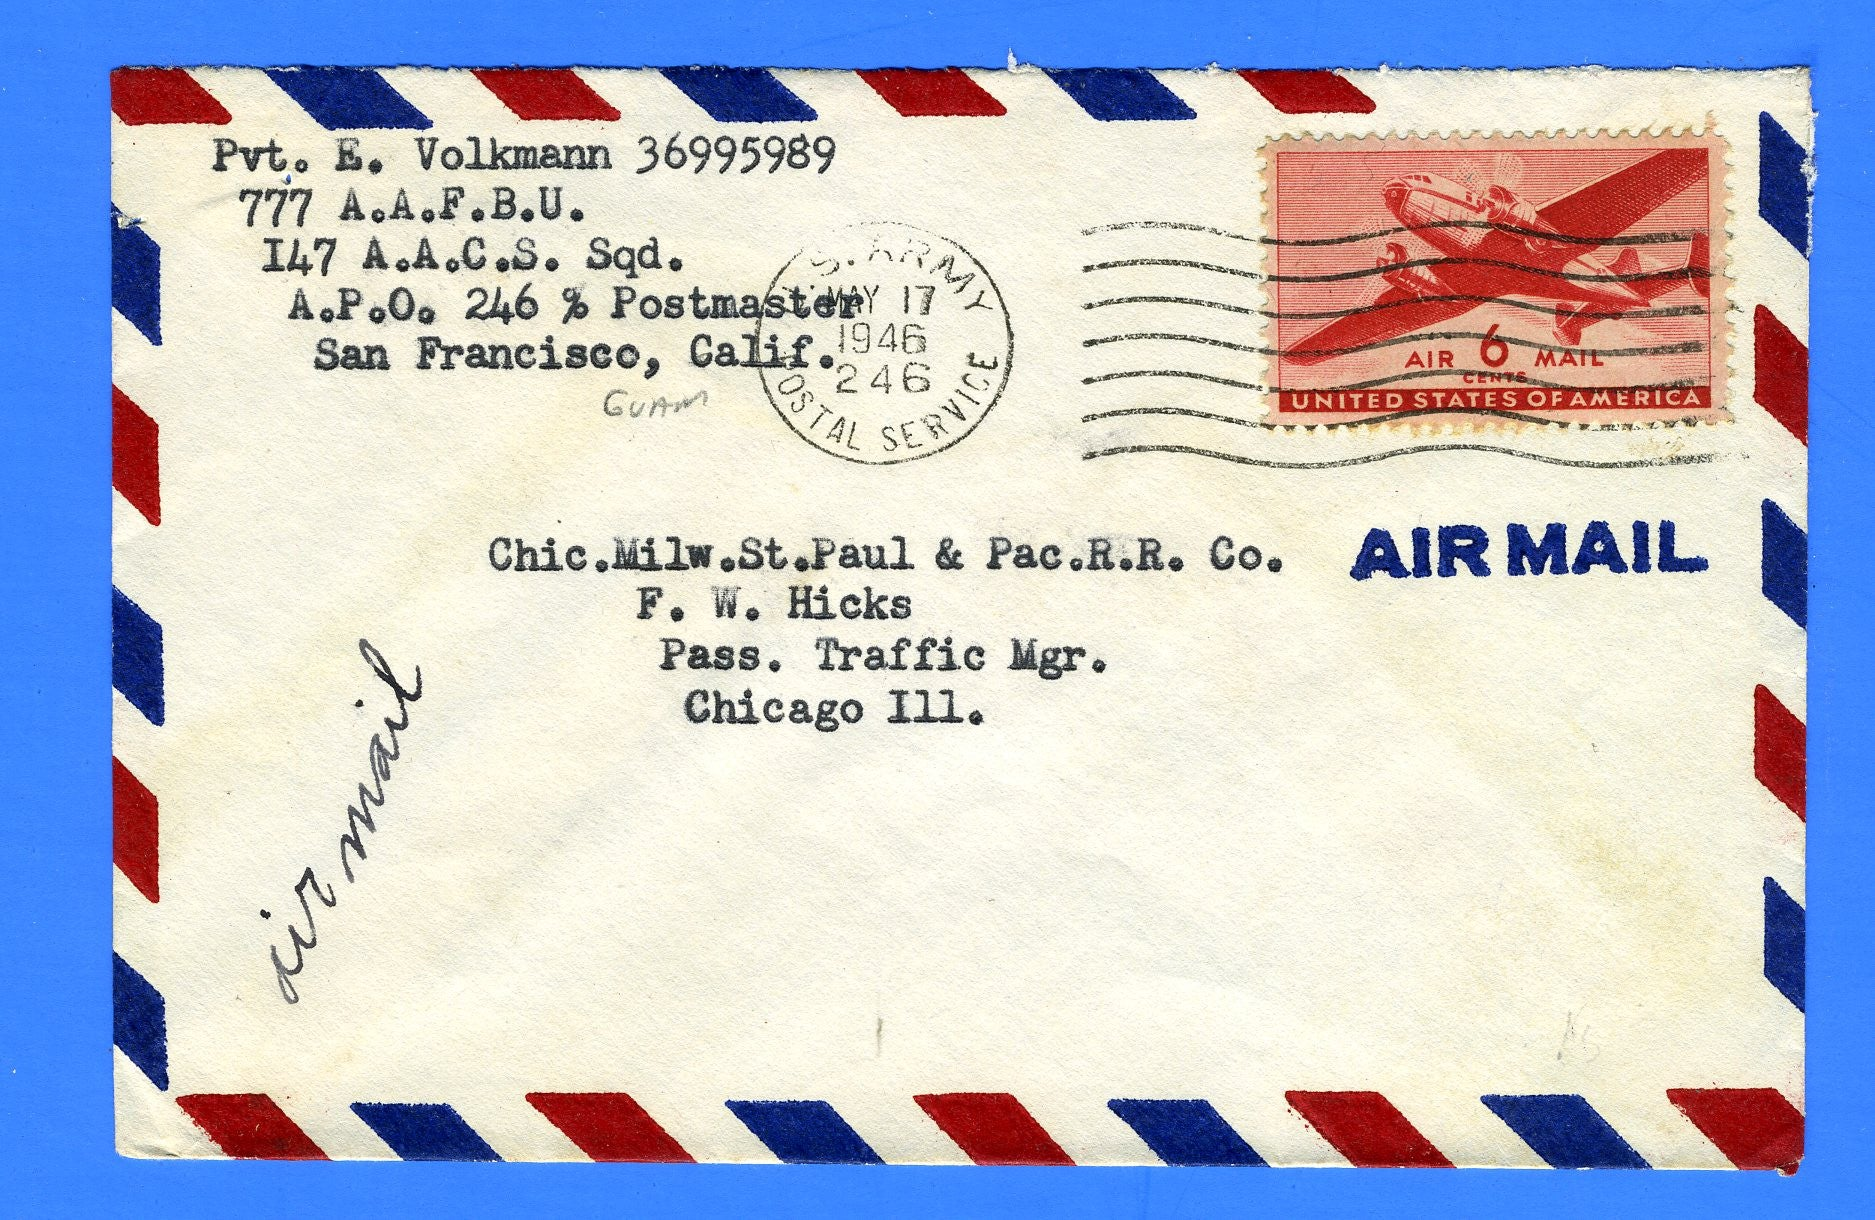 Soldier's Mail APO 246 Guam, Marianas May 17, 1946